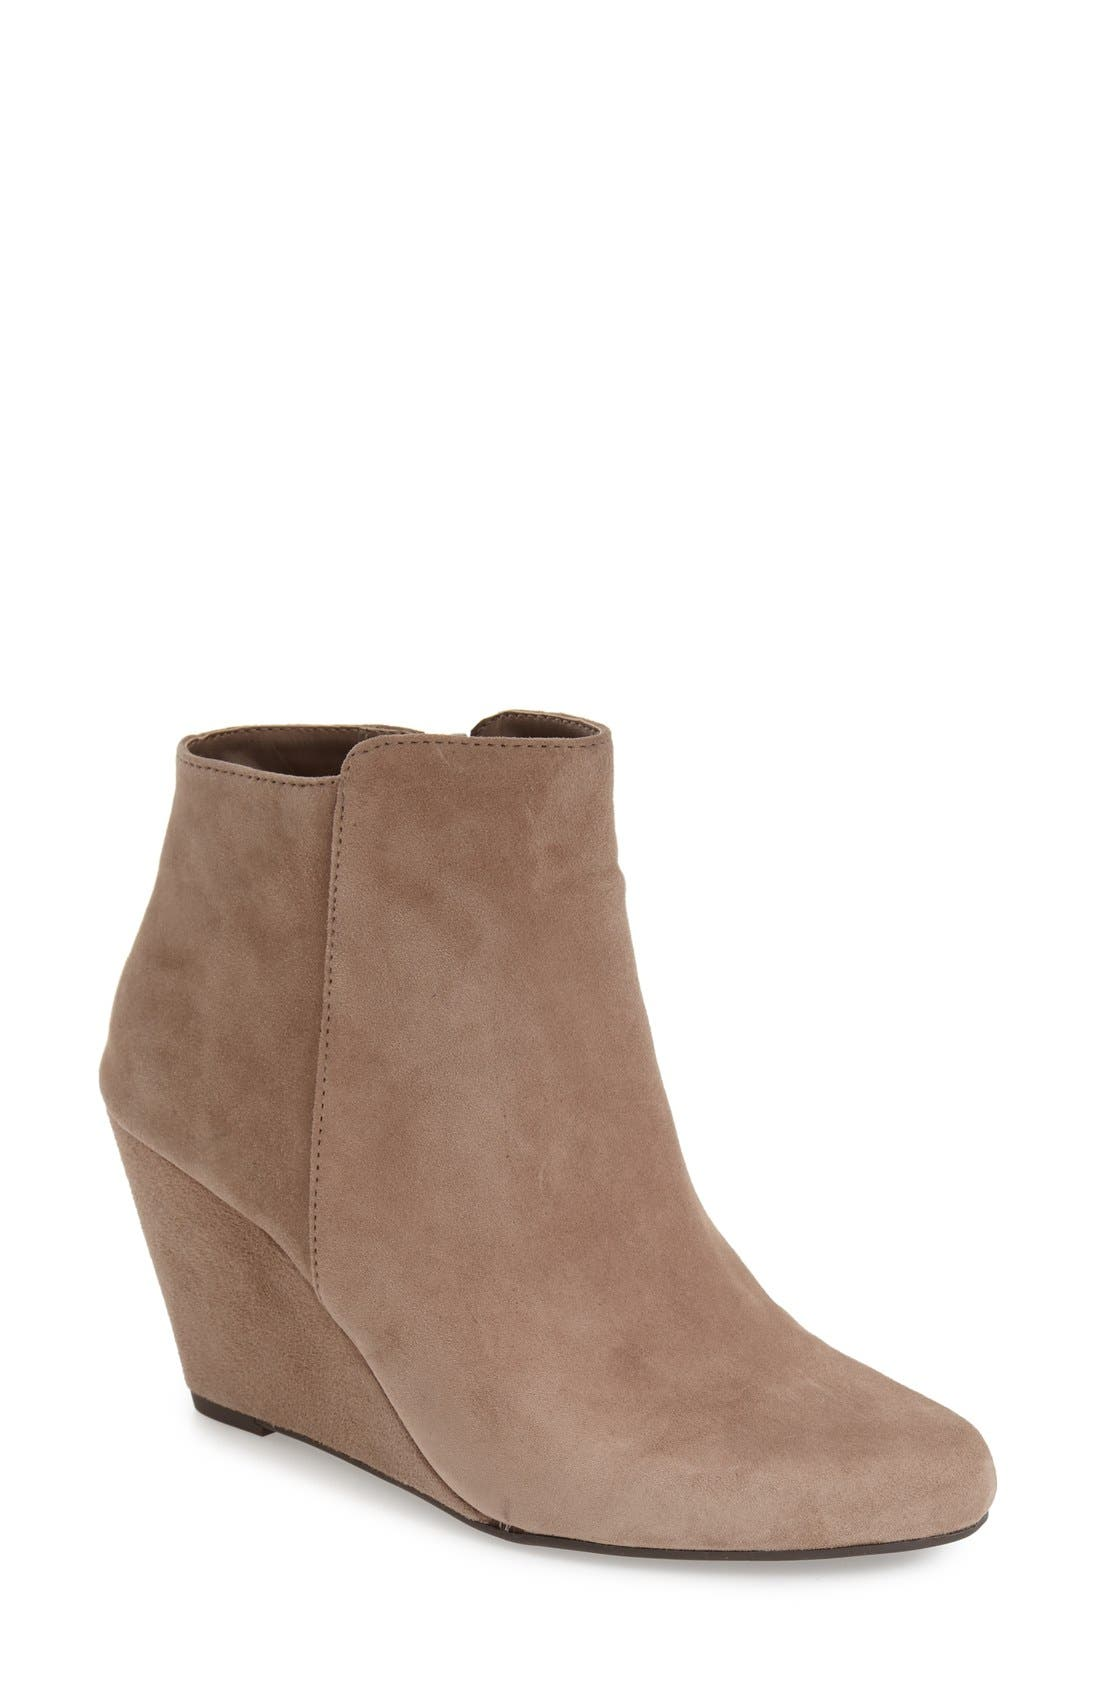 Alternate Image 1 Selected - Jessica Simpson 'Remixx' Wedge Bootie (Women)